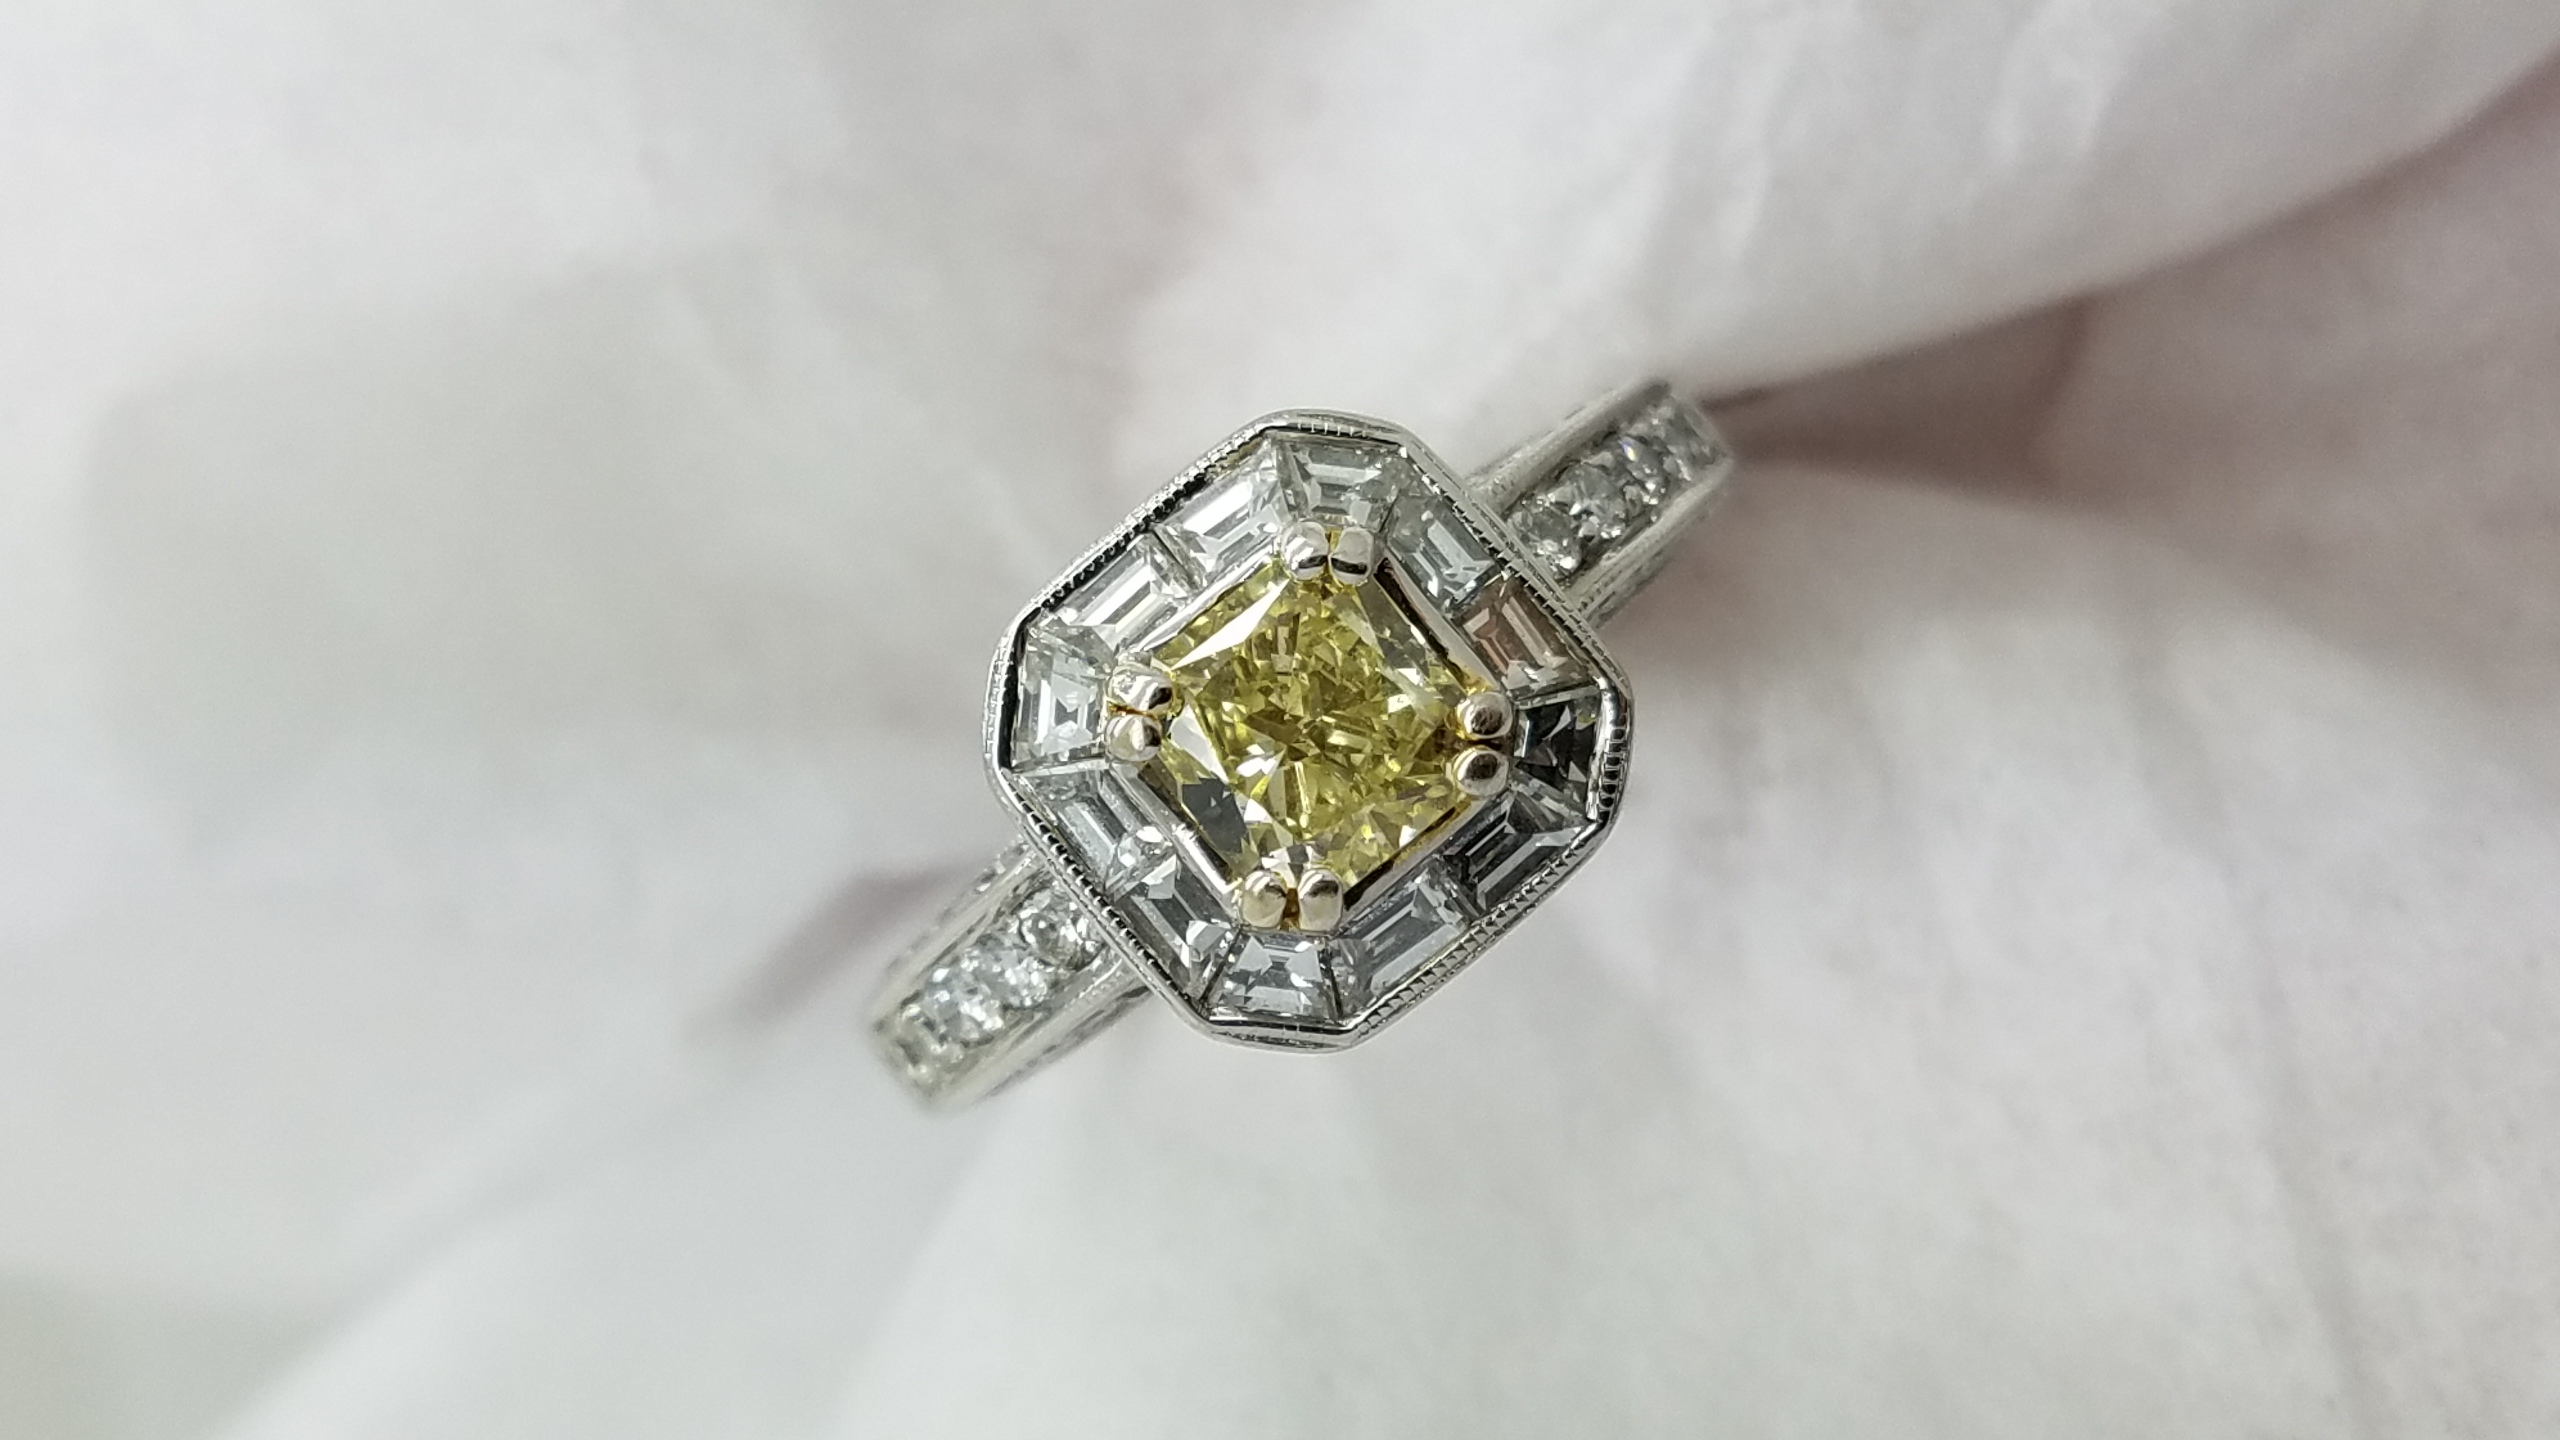 18K	TT	halo milgrain	0.80+1.00	ct.	RAD+B+R	Cut	Diamond	4-prong/ channel/pave	Solitaire with Accents		Engagement-Ring